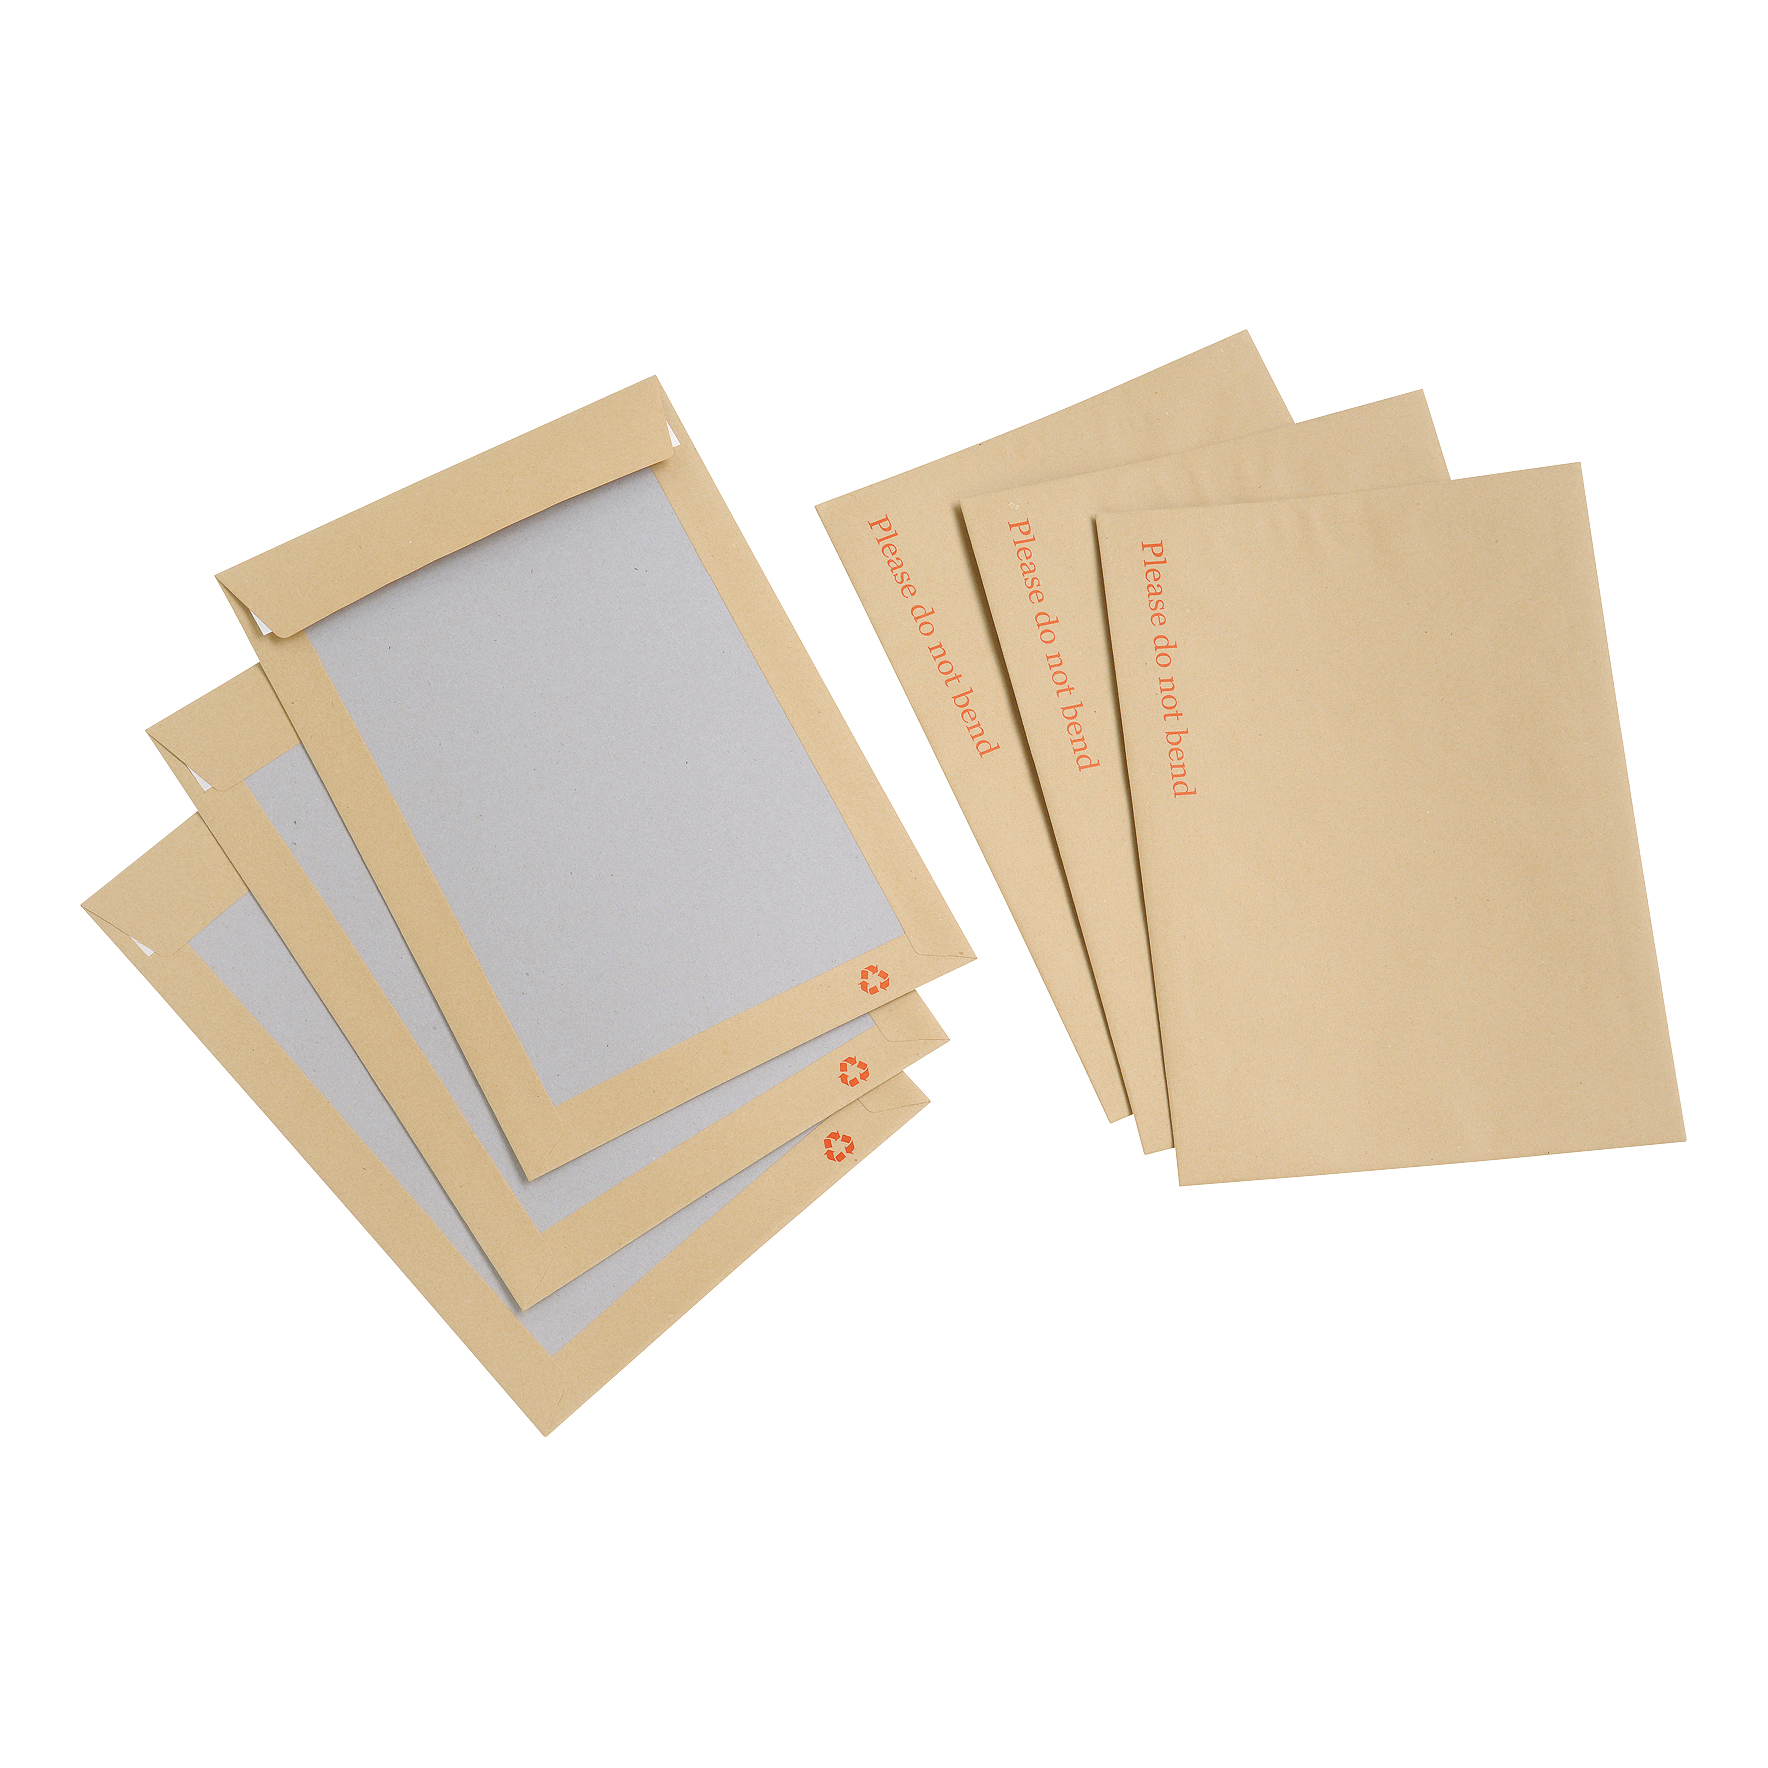 Board Backed Envelopes 5 Star Value Envelope Recycled Board Back Peel and Seal C4 115gsm Manilla Pack 125